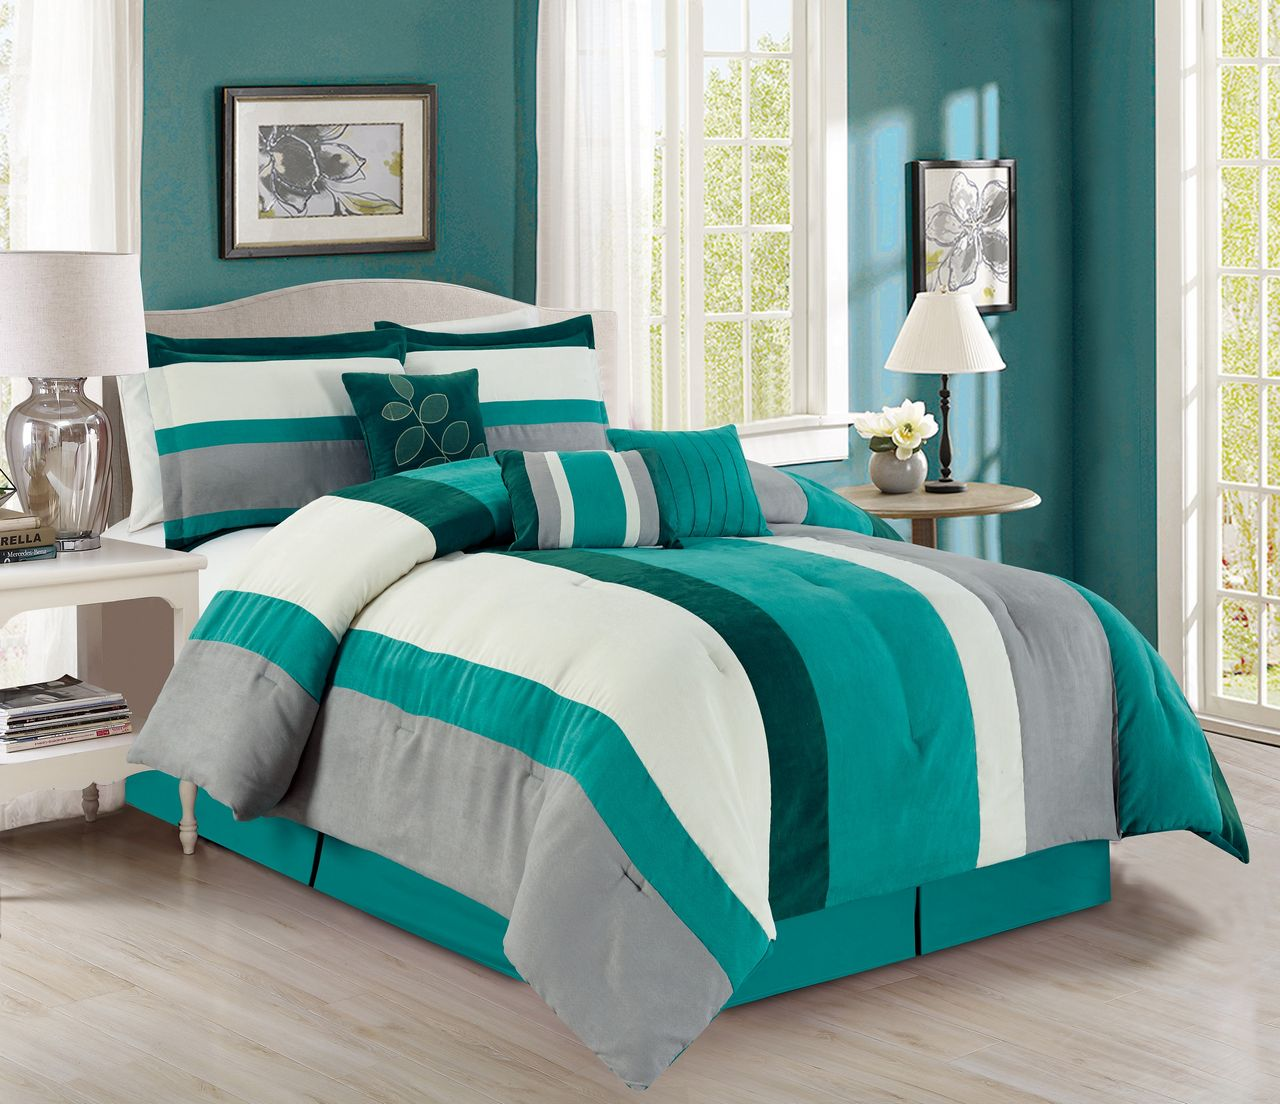 7 Piece Stripe Micro Suede Teal Ivory Gray Comforter Set